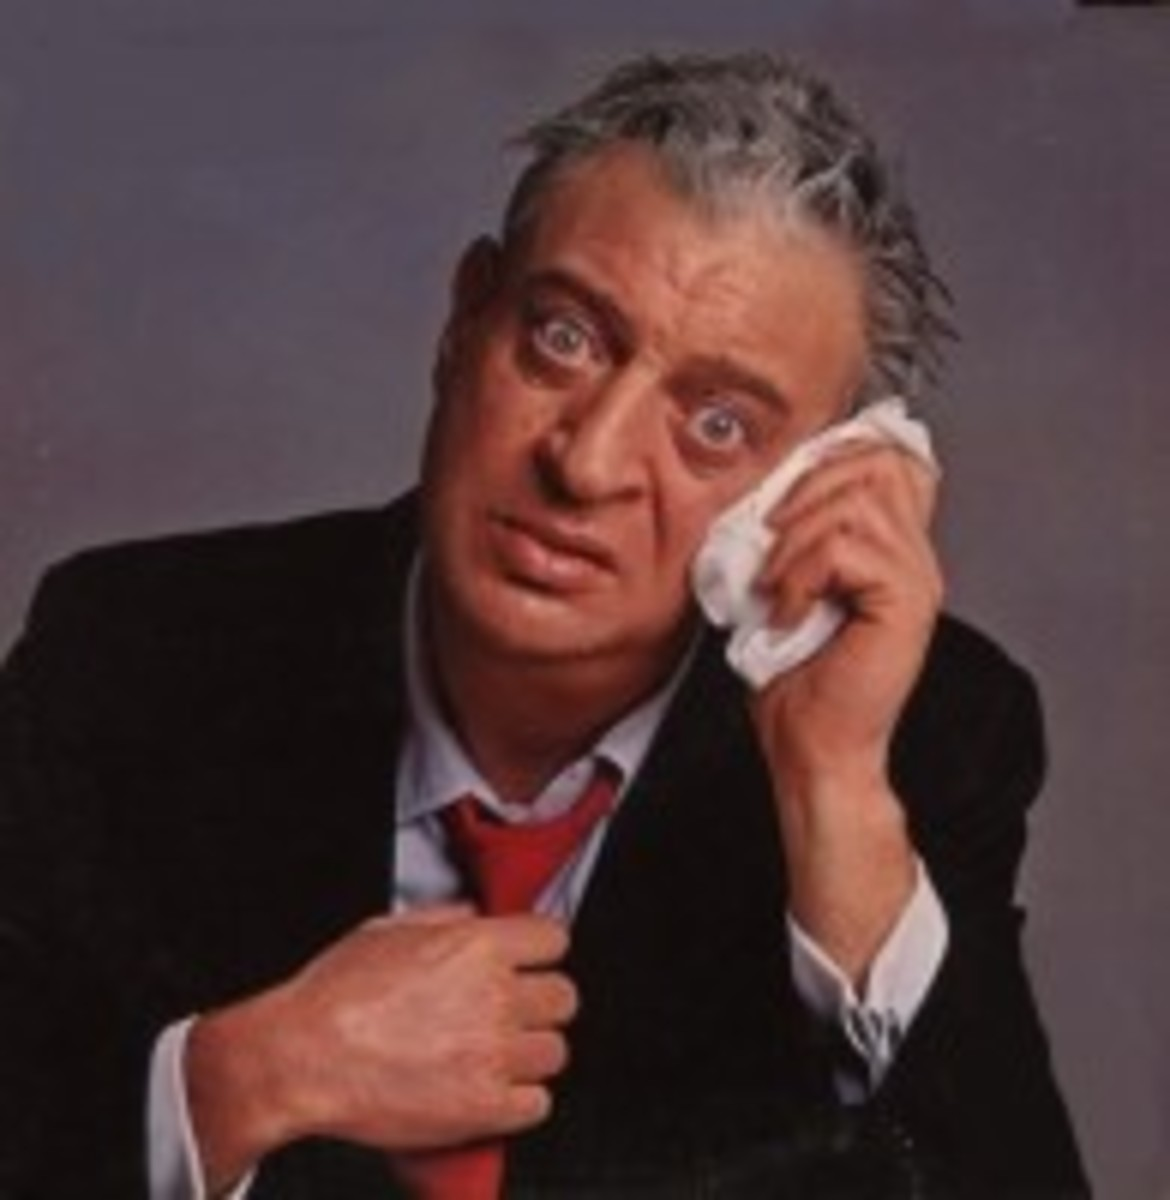 """Comedian Rodney Dangerfield was known for his signature behavior of tugging on his tie and saying """"I don't get no respect."""""""